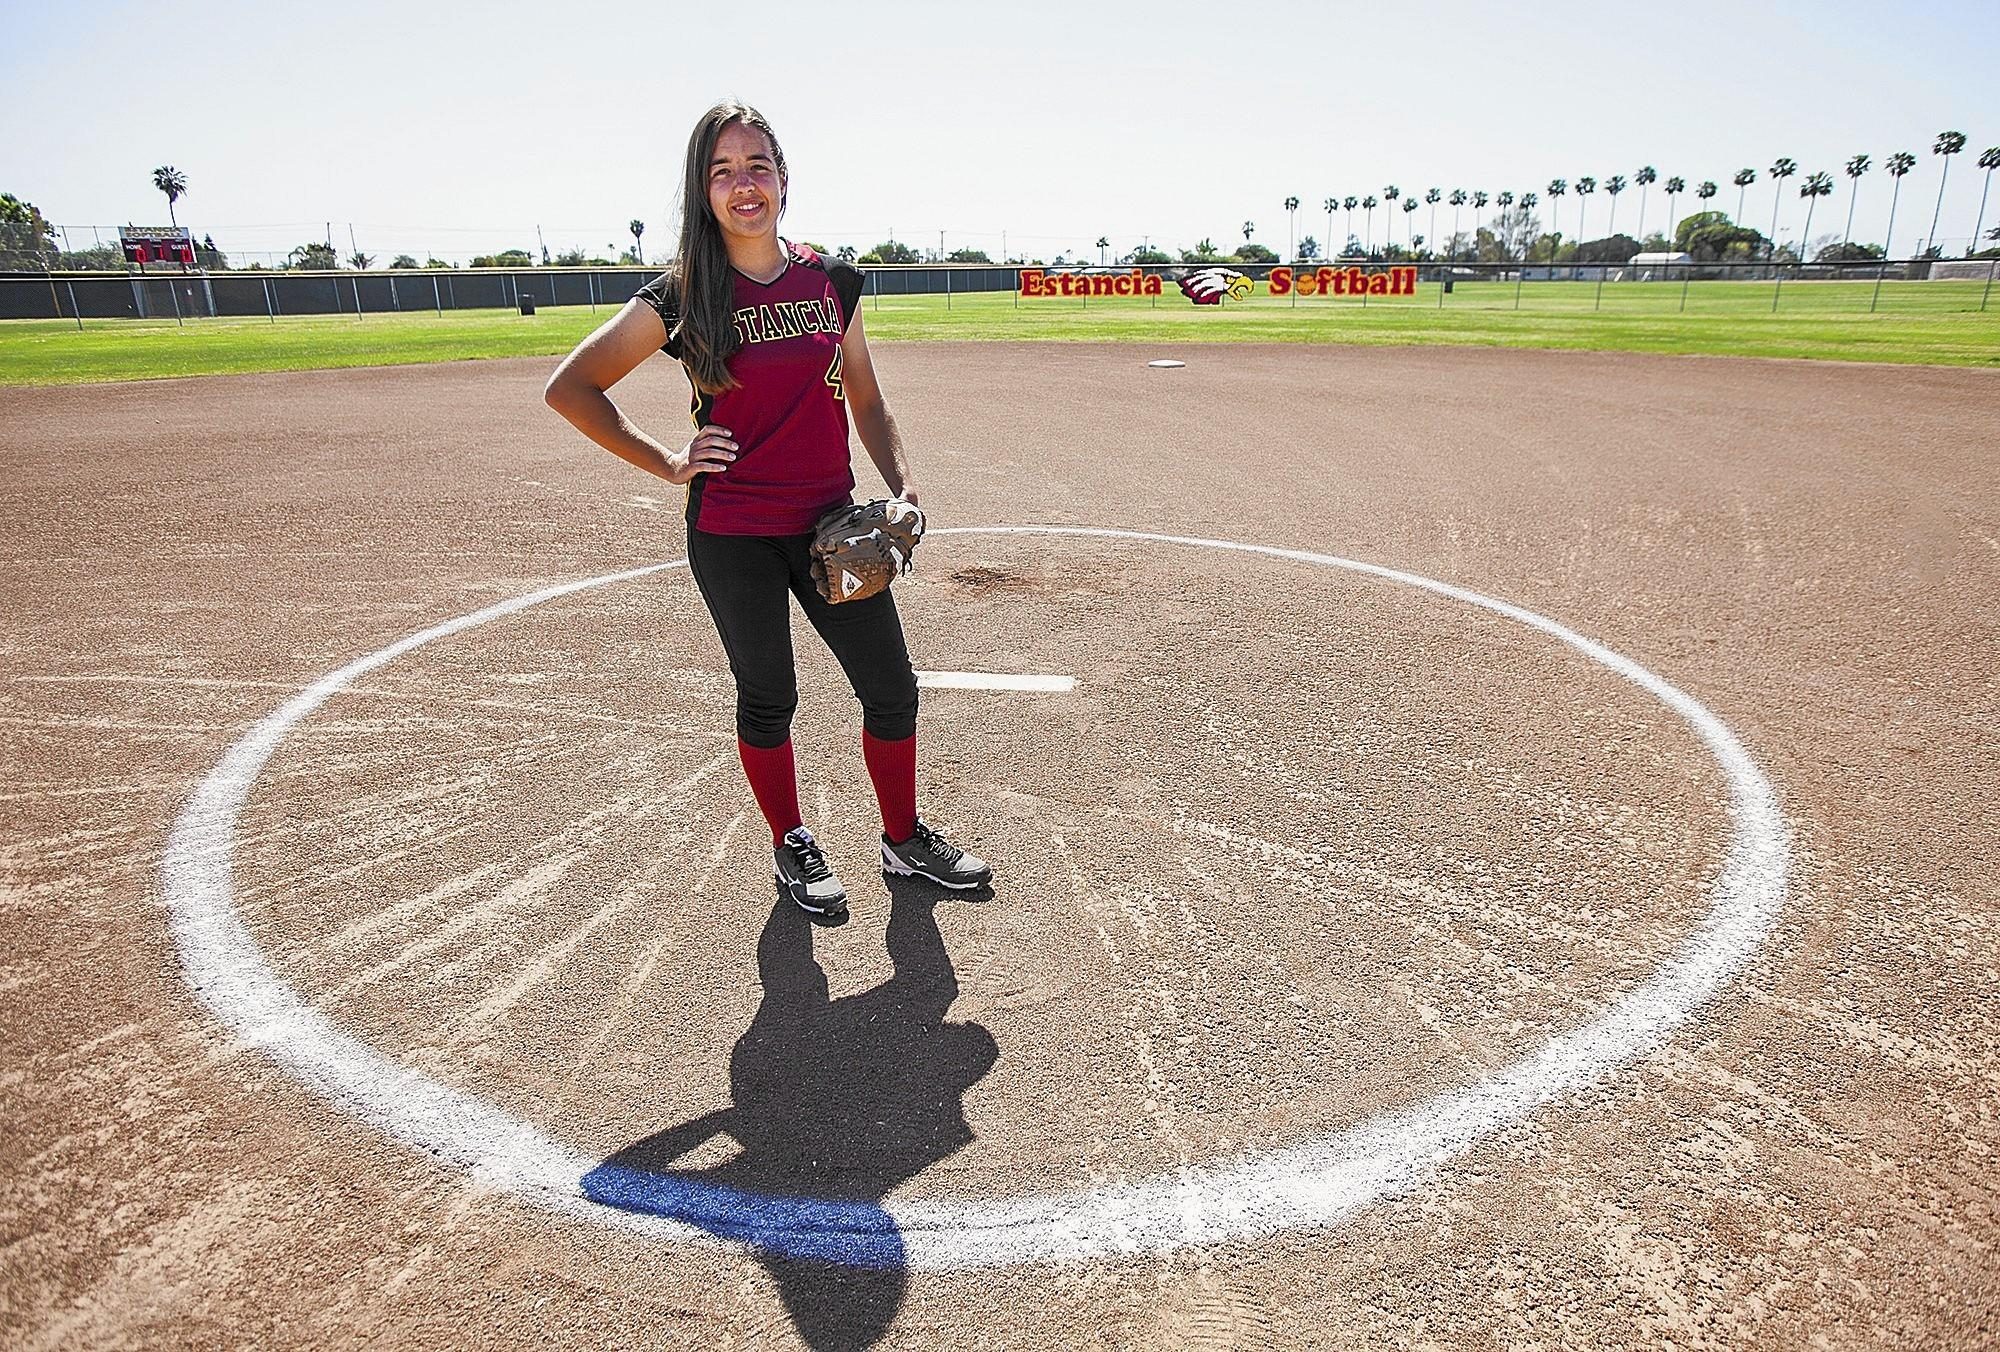 Estancia High pitcher Kelly Hinkle is the Daily Pilot High School Athlete of the Week.